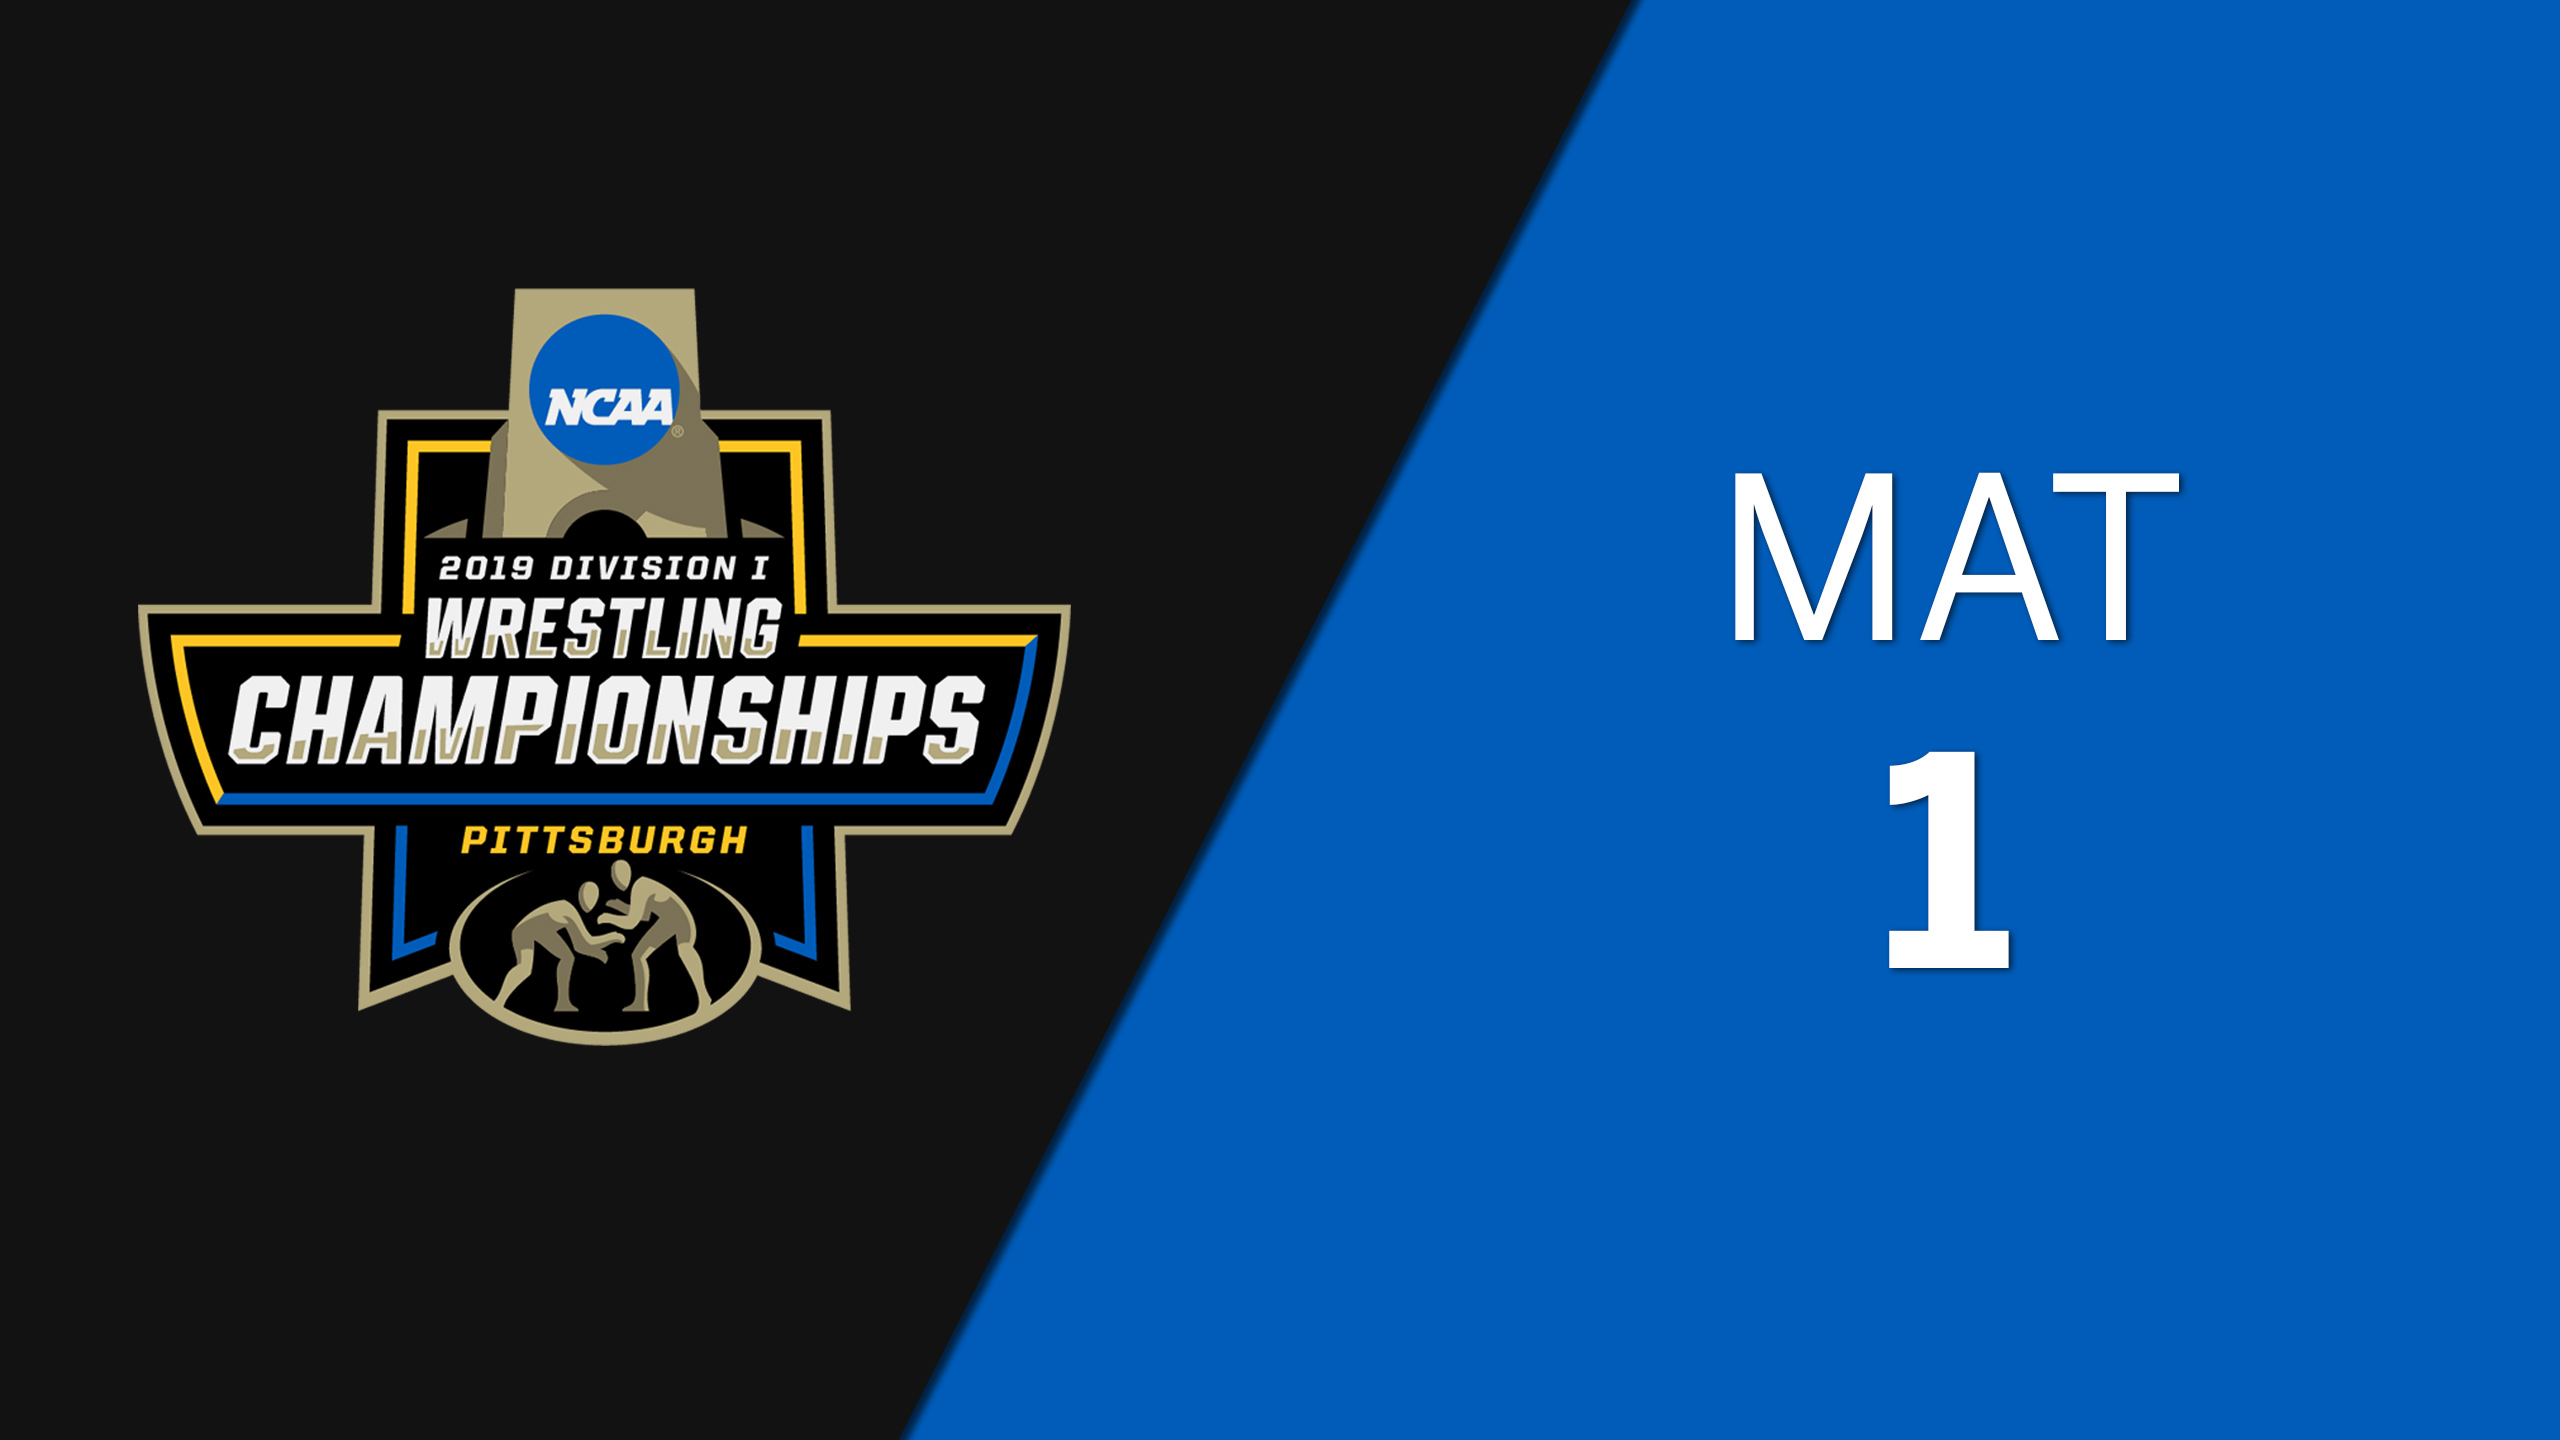 NCAA Wrestling Championship (Mat 1, Second Round)